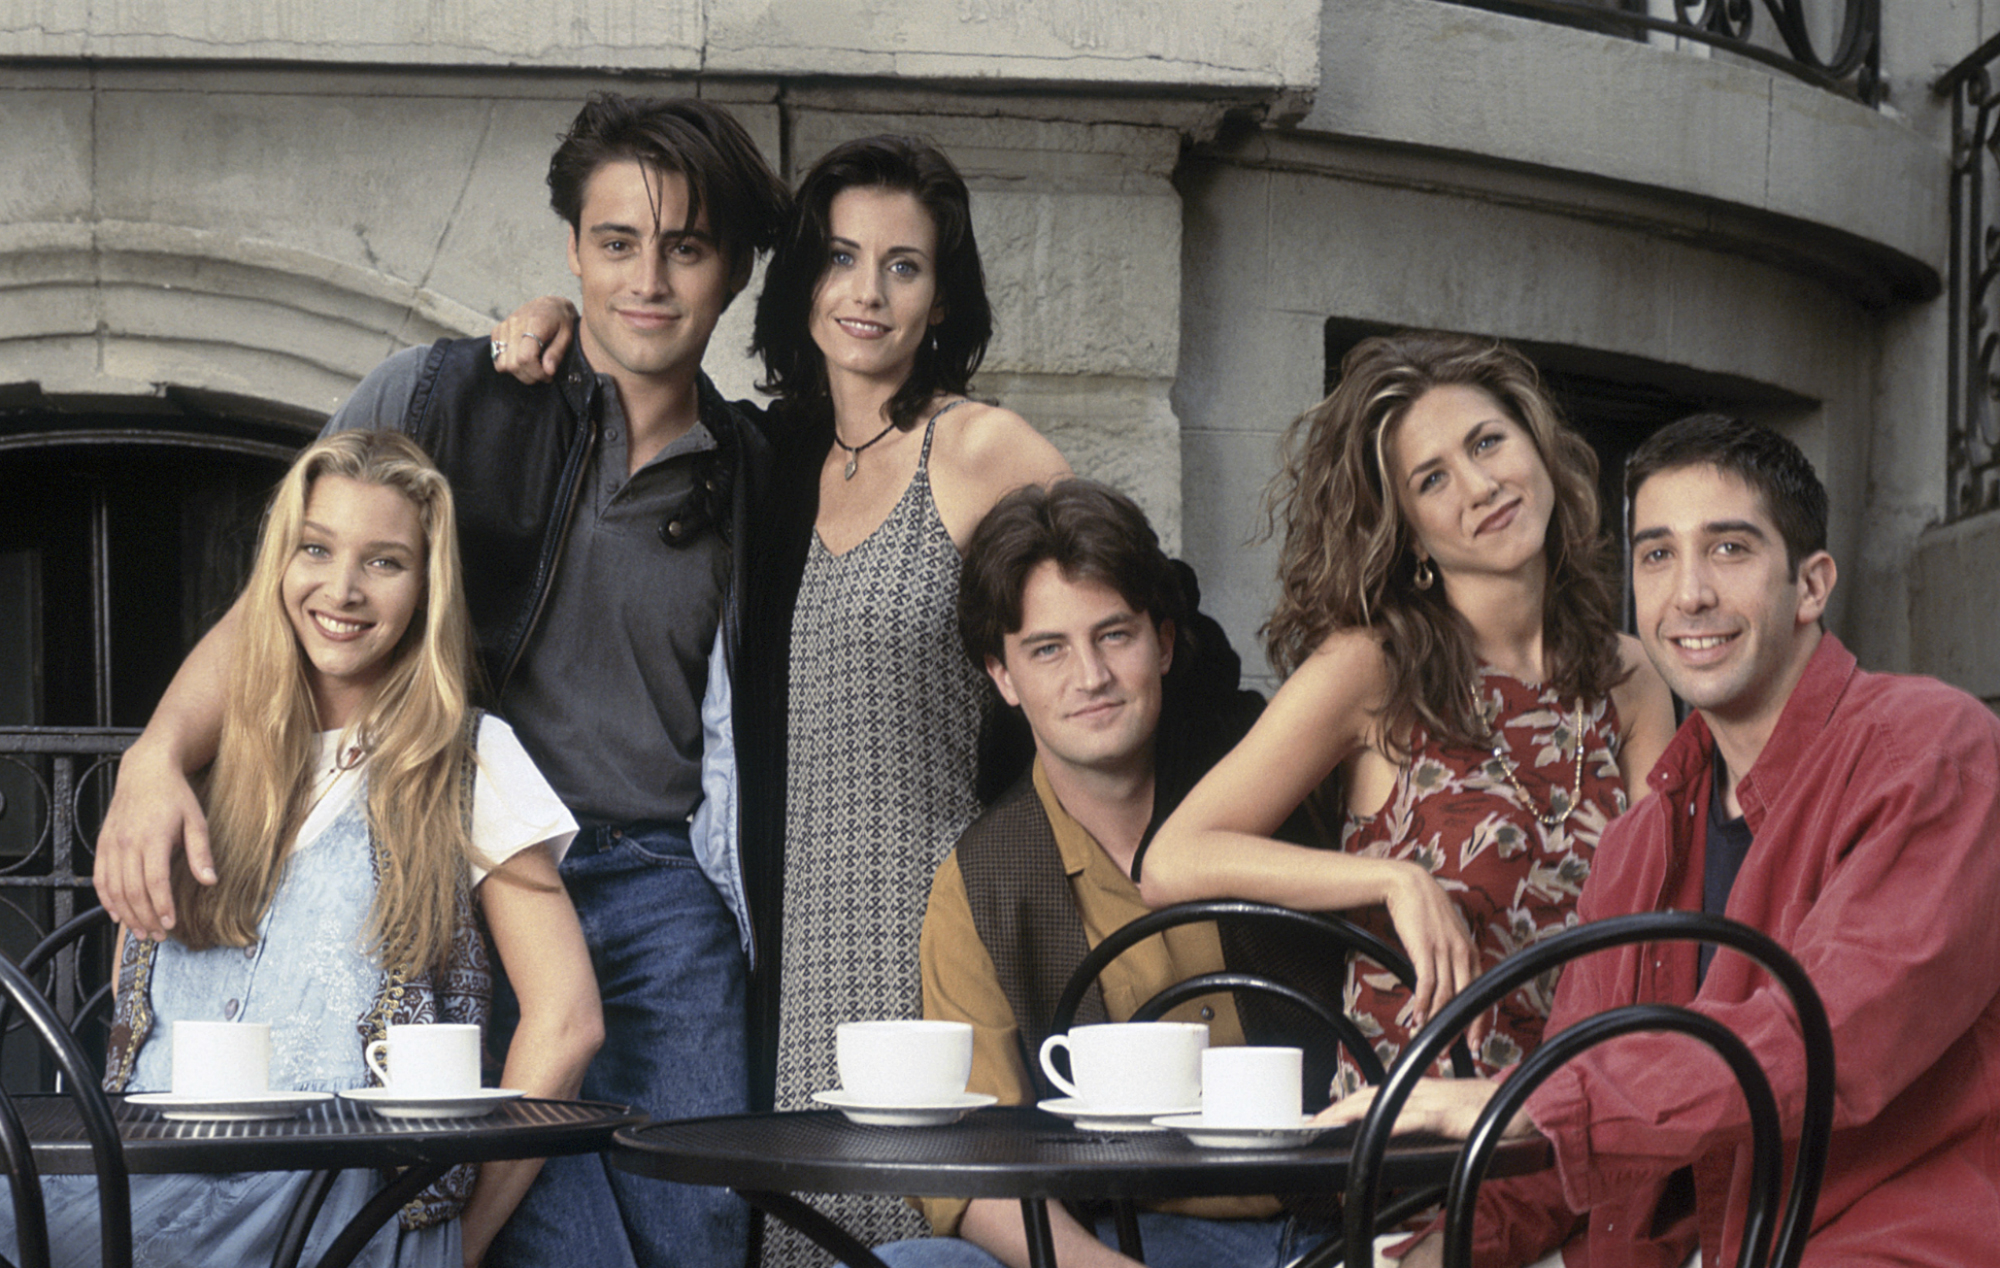 David Schwimmer responds to 'Friends' reunion rumours - NME